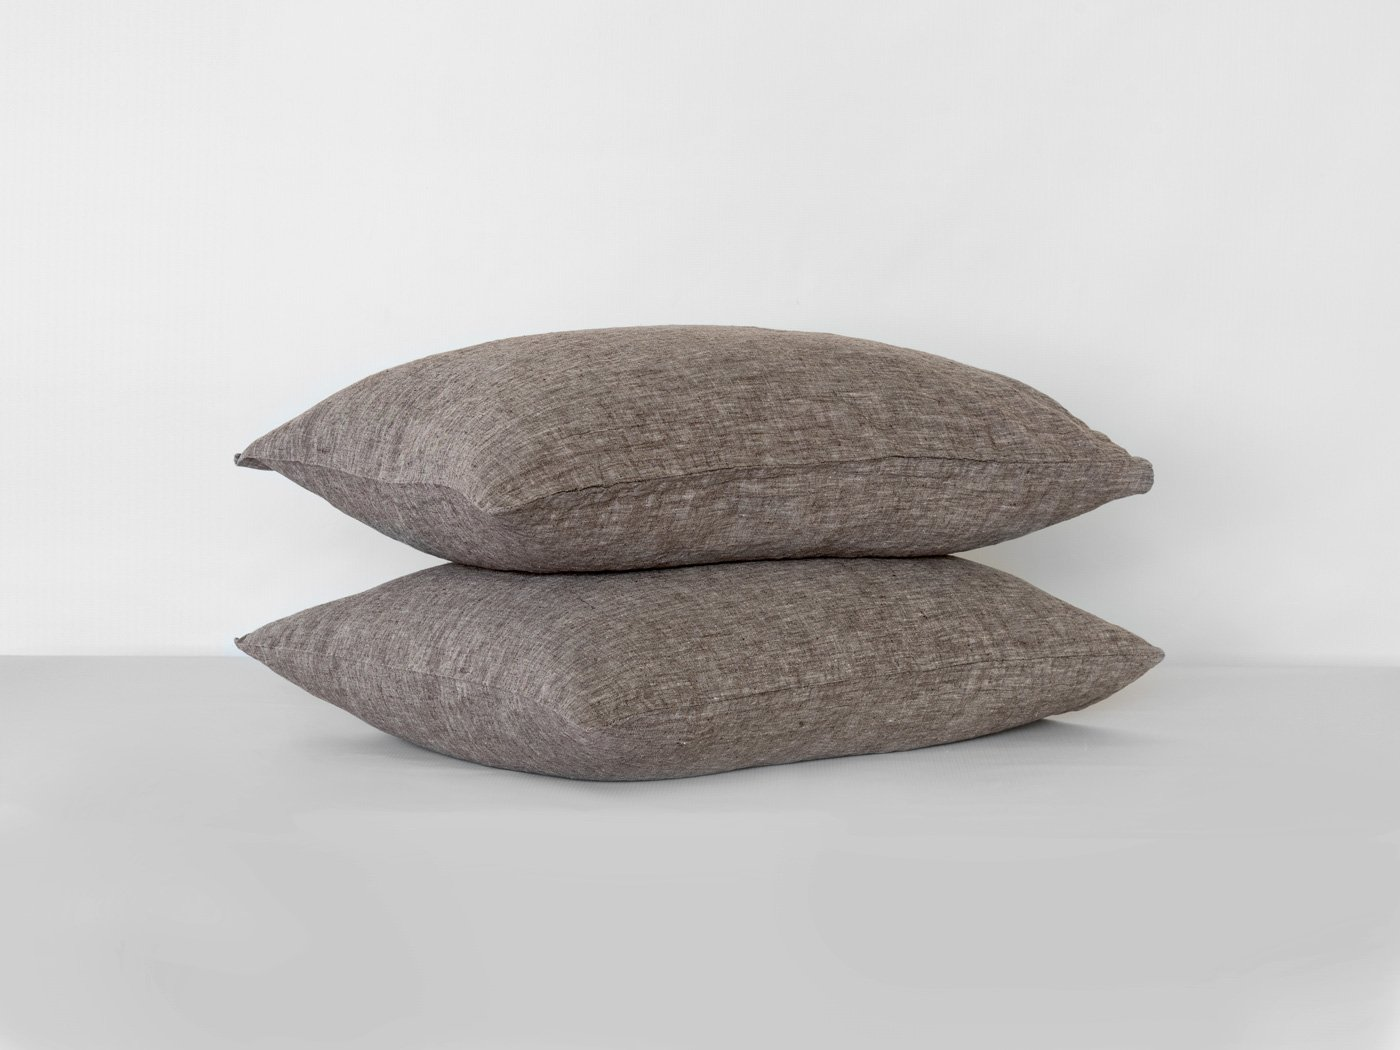 BEALINEN Linen Pillowcases Shams 2 pcs with Inside Pocket Closure Size SQUARE 26''x26'' Dark Coffee Stone Gray Color Washed Softened European Linen